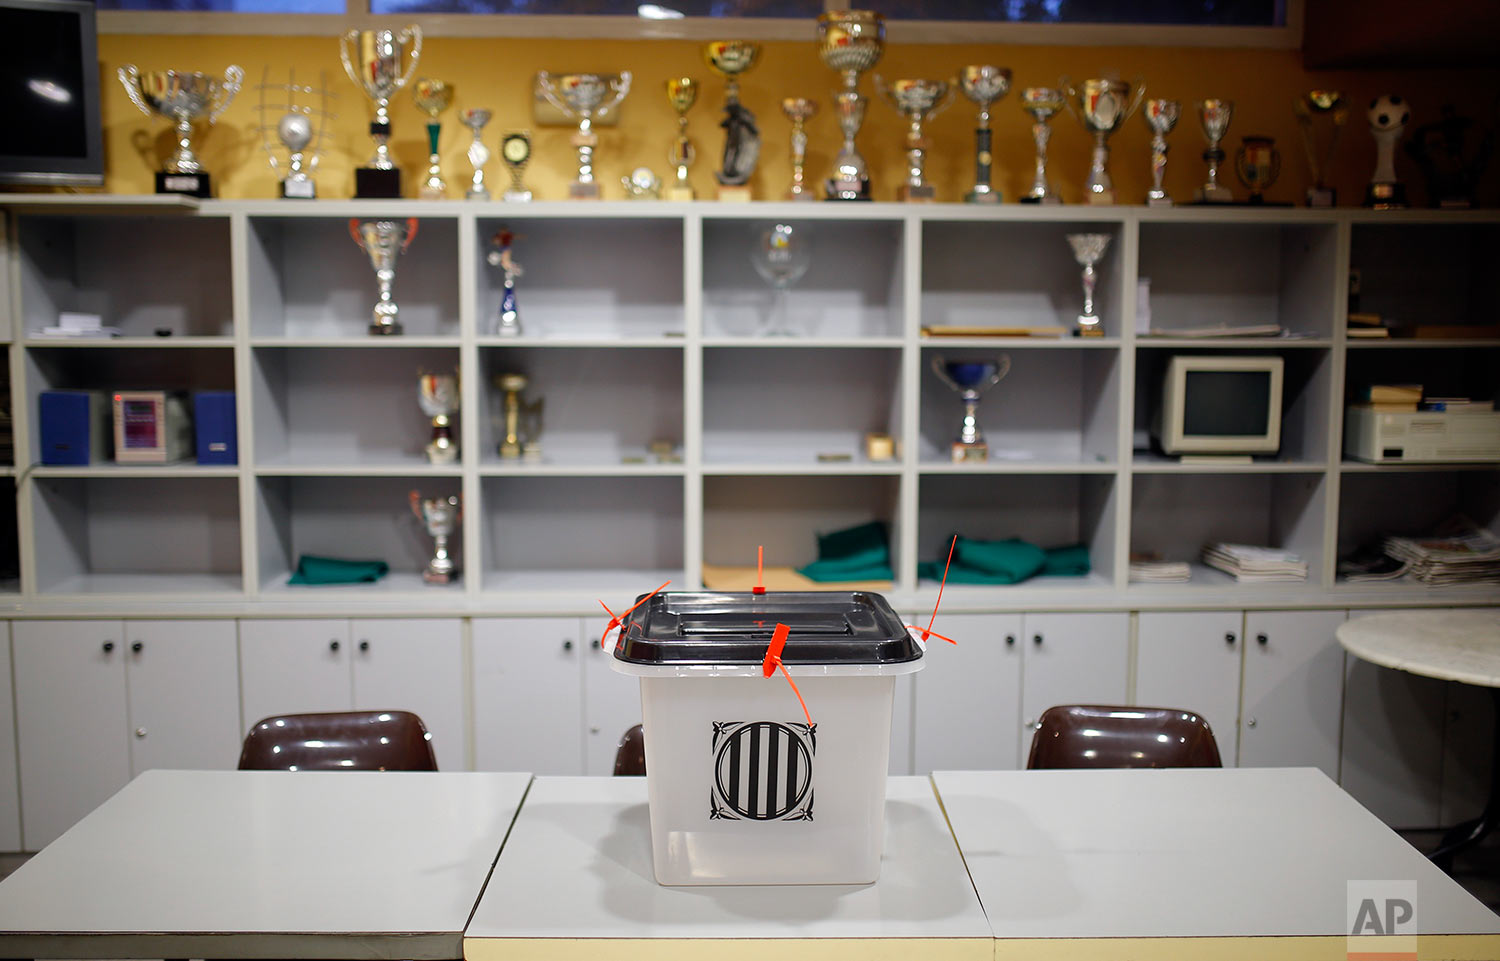 A ballot box sits on a table at a sports center assigned to be a polling station by the Catalan government and where Catalan President Carles Puigdemont is expected to vote, in Sant Julia de Ramis, near Girona, Spain, Sunday, Oct. 1, 2017. Catalan pro-referendum supporters vowed to ignore a police ultimatum to leave the schools they are occupying to use in a vote seeking independence from Spain. (AP Photo/Francisco Seco)